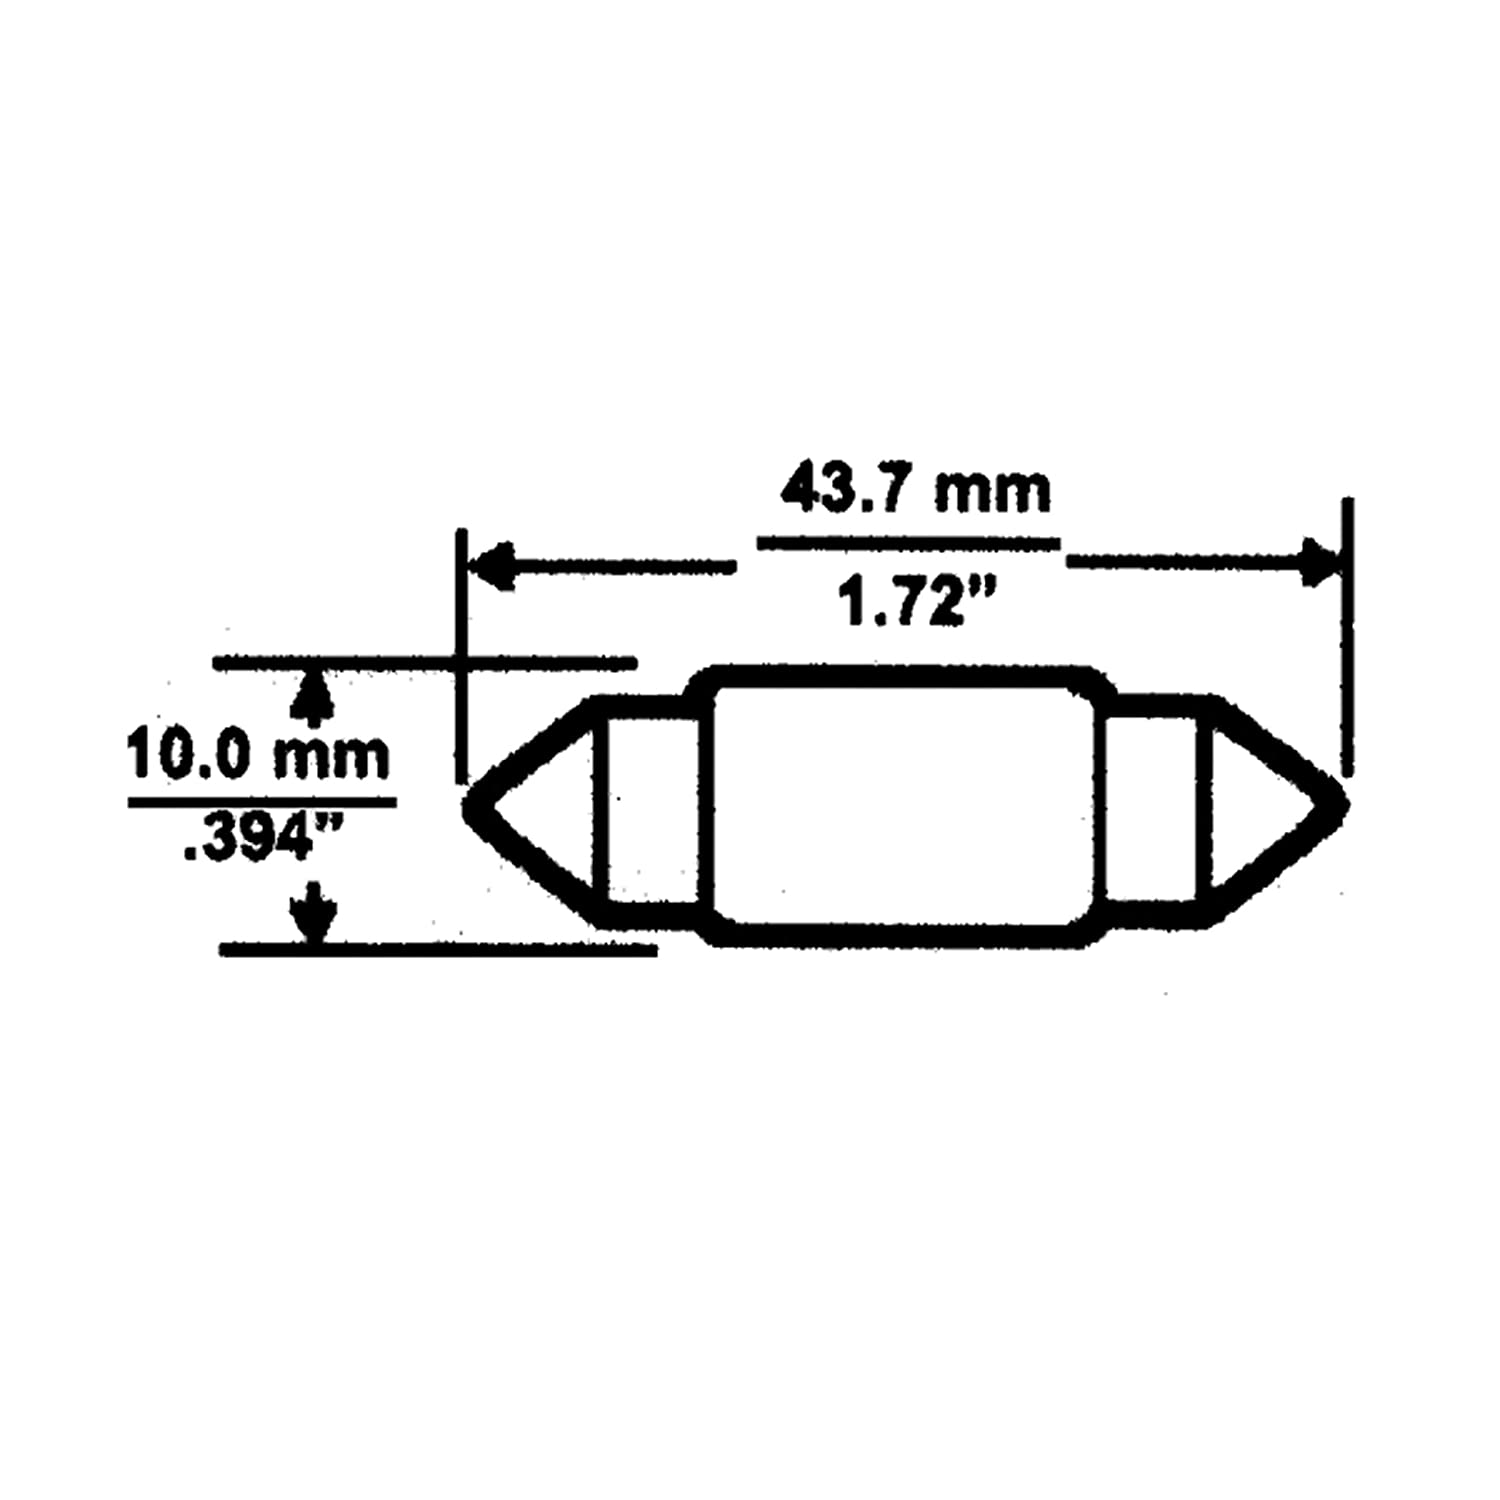 Camco 54754 Replacement 211-2 Auto Interior Light Bulb Box of 10